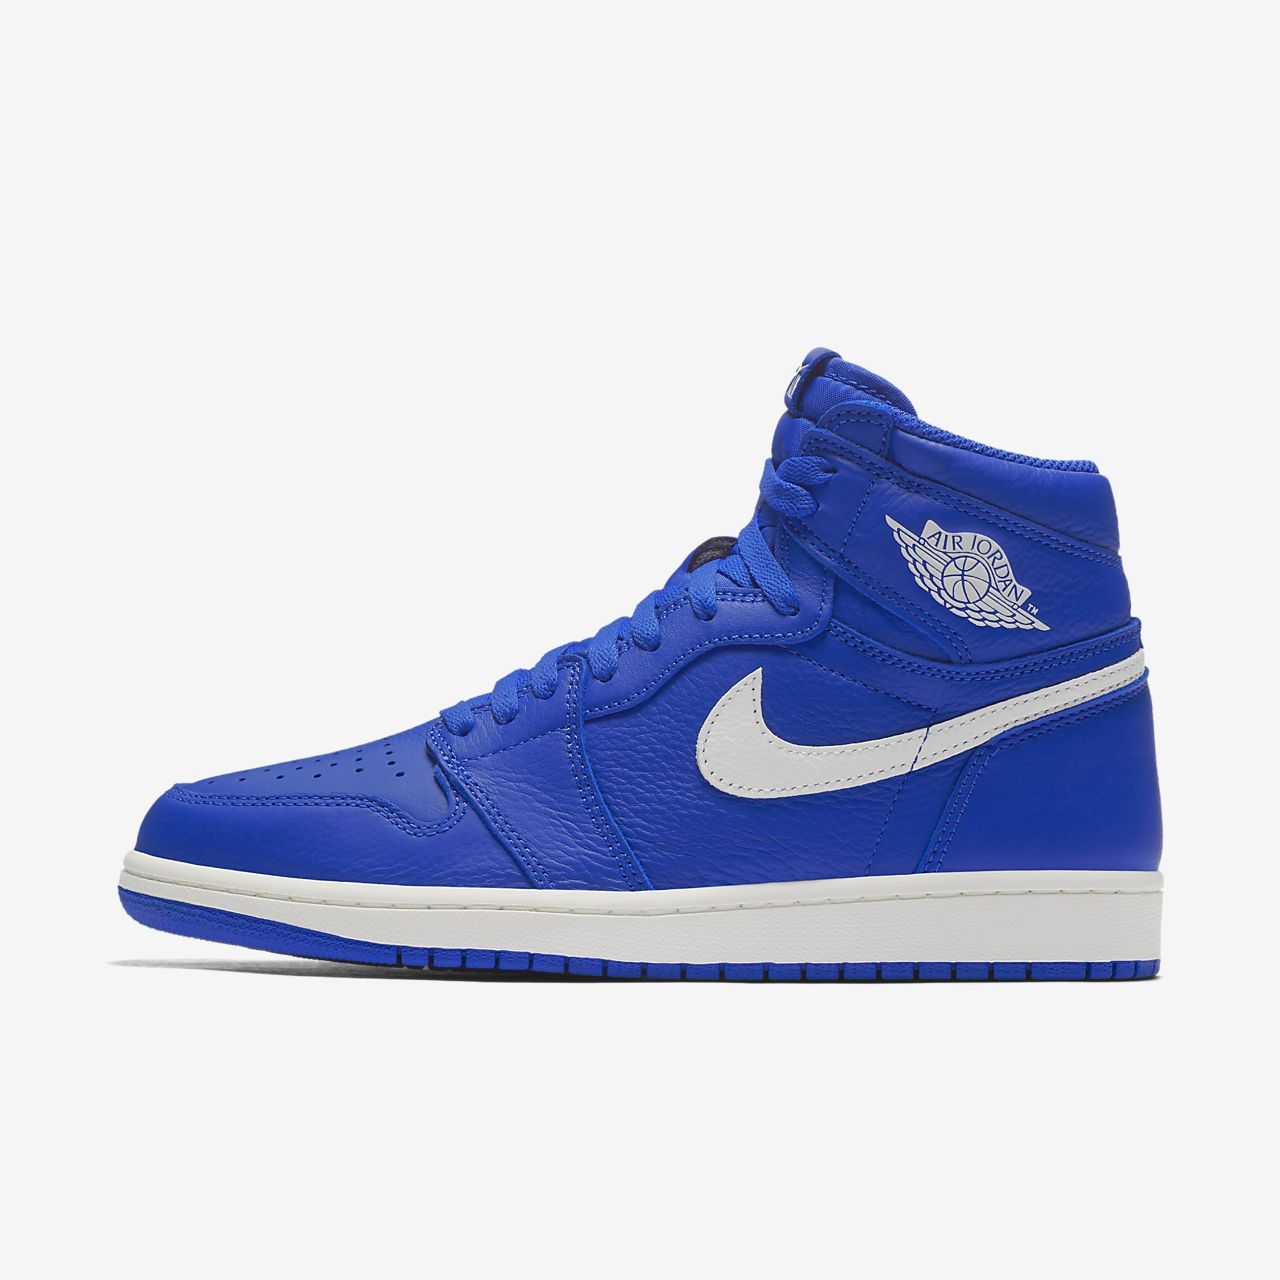 dd2b11d79dca15 Air Jordan 1 Retro High OG Shoe. Nike.com AU